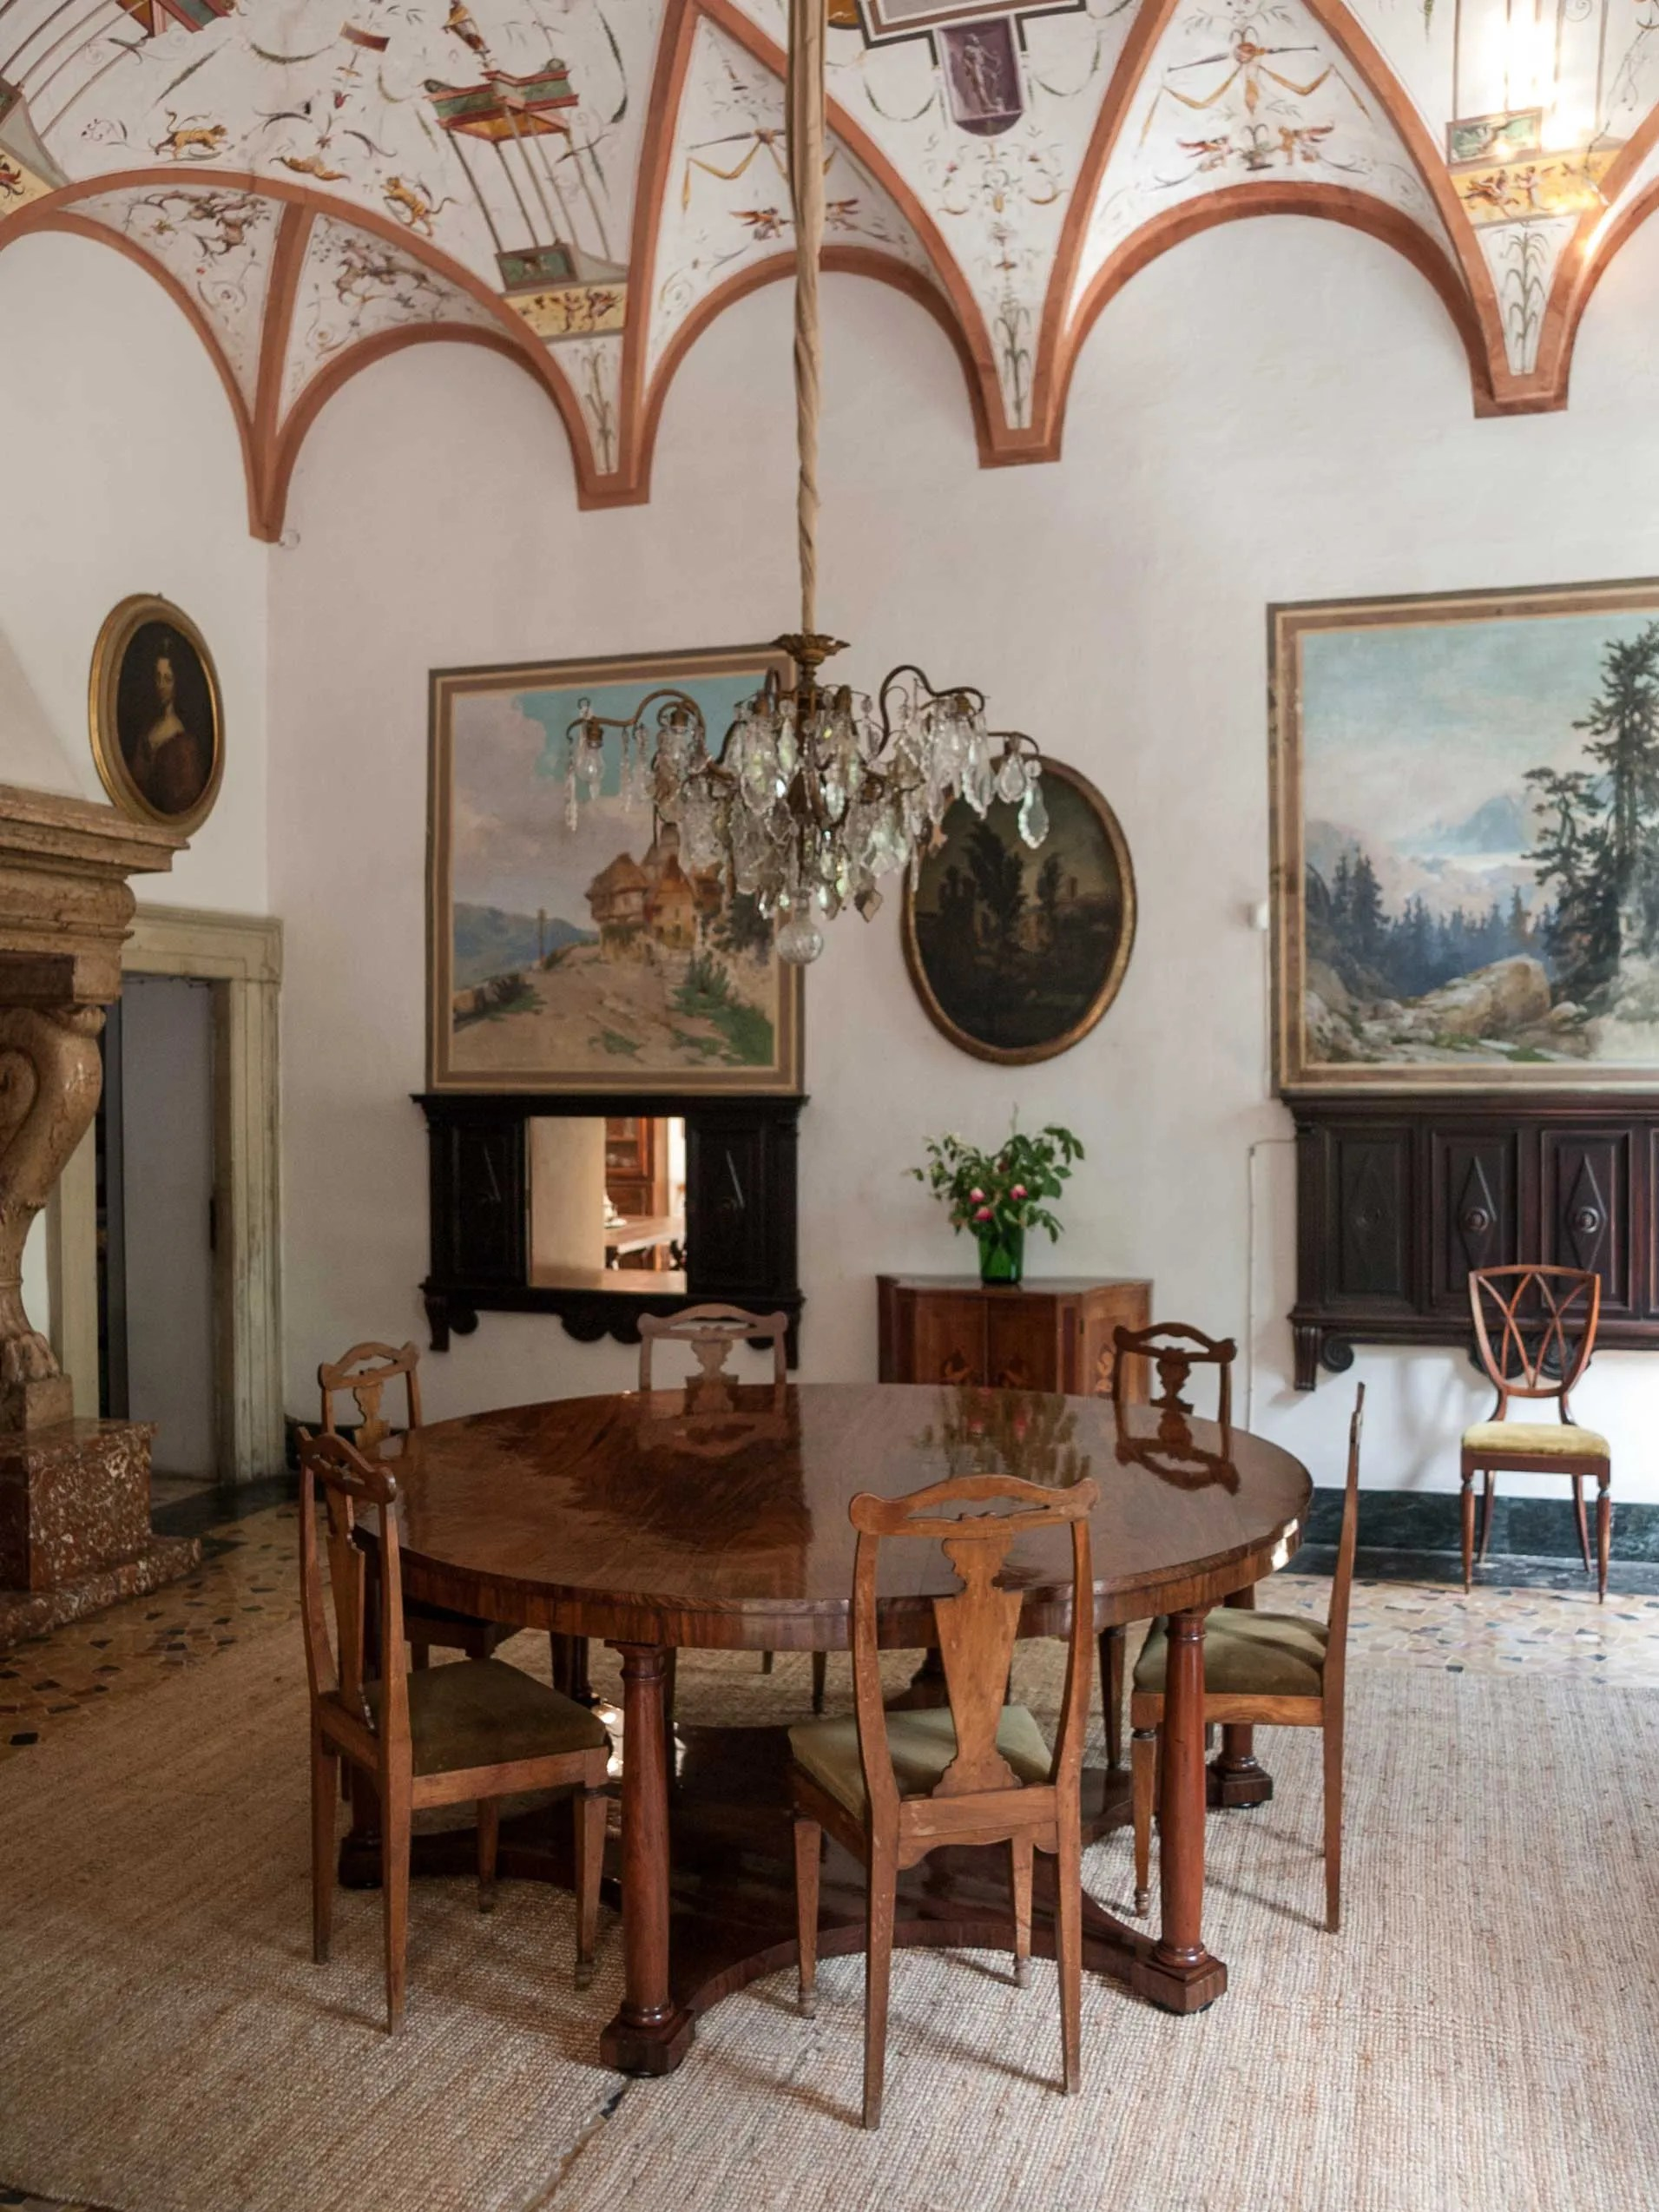 Call Me By Your Name Bedroom : bedroom, Story, Behind, Italian, Villa, Architectural, Digest